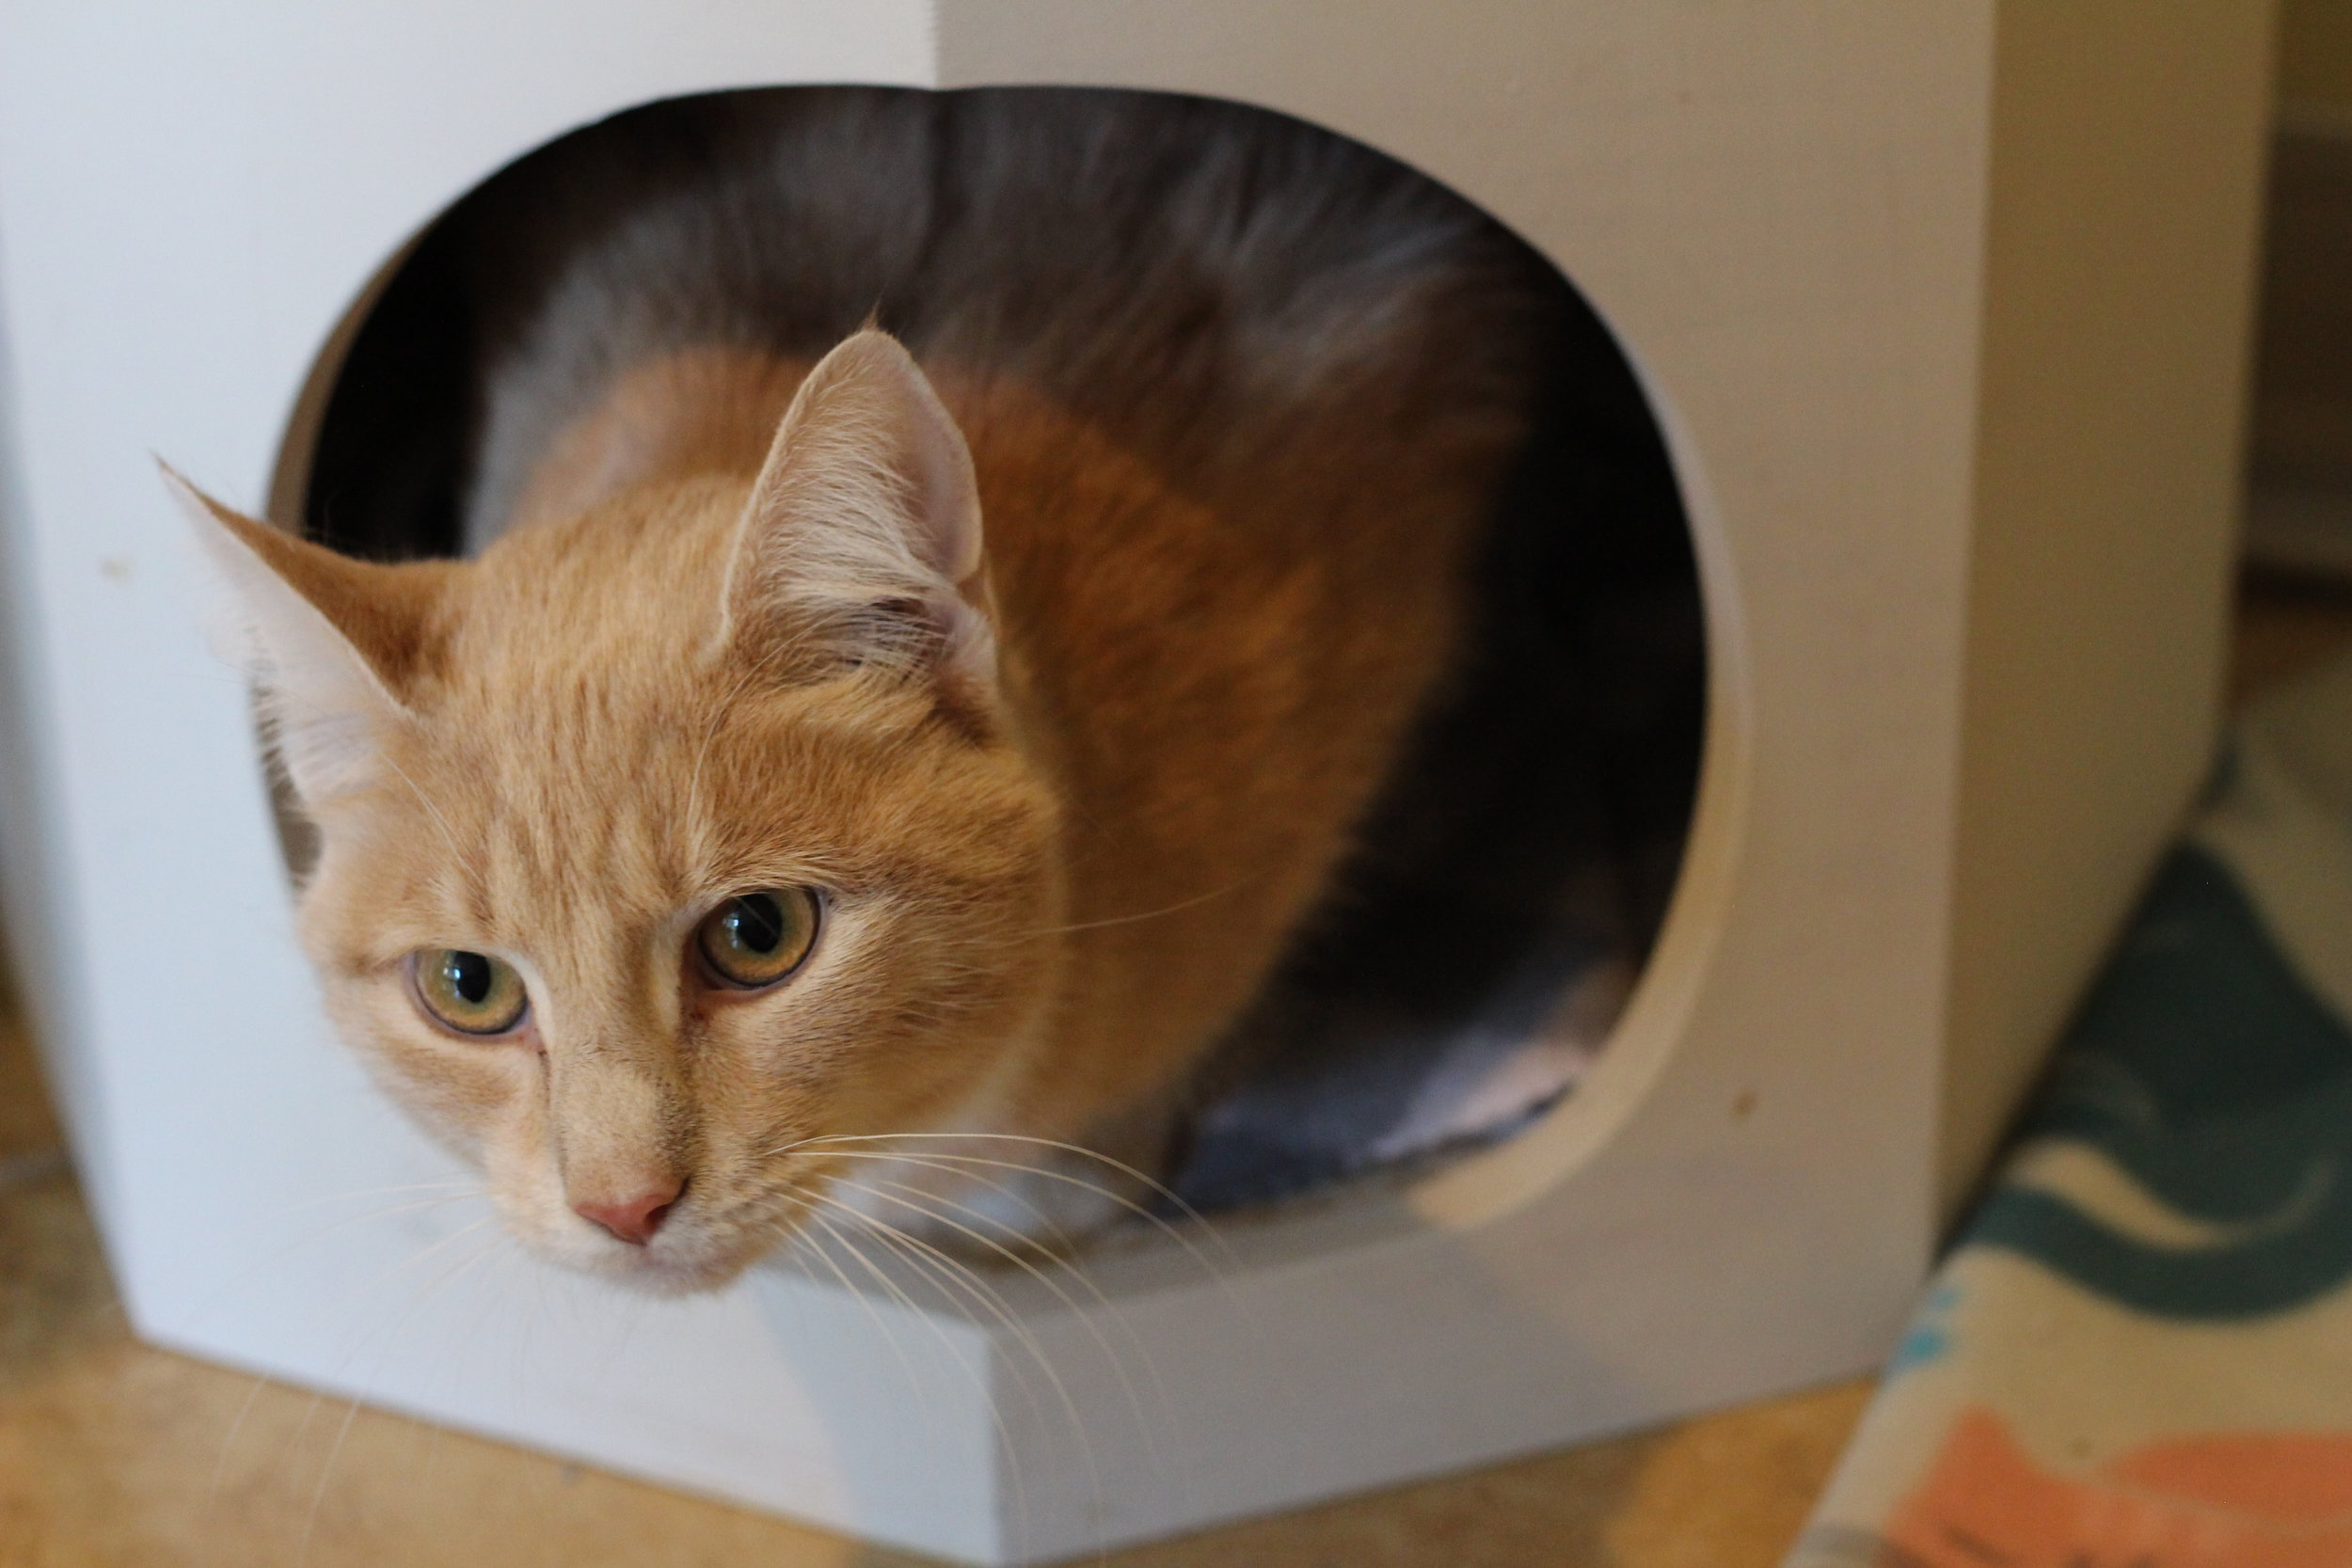 Shy kitties love peeking out from inside their cubby hiding spaces inside their room.